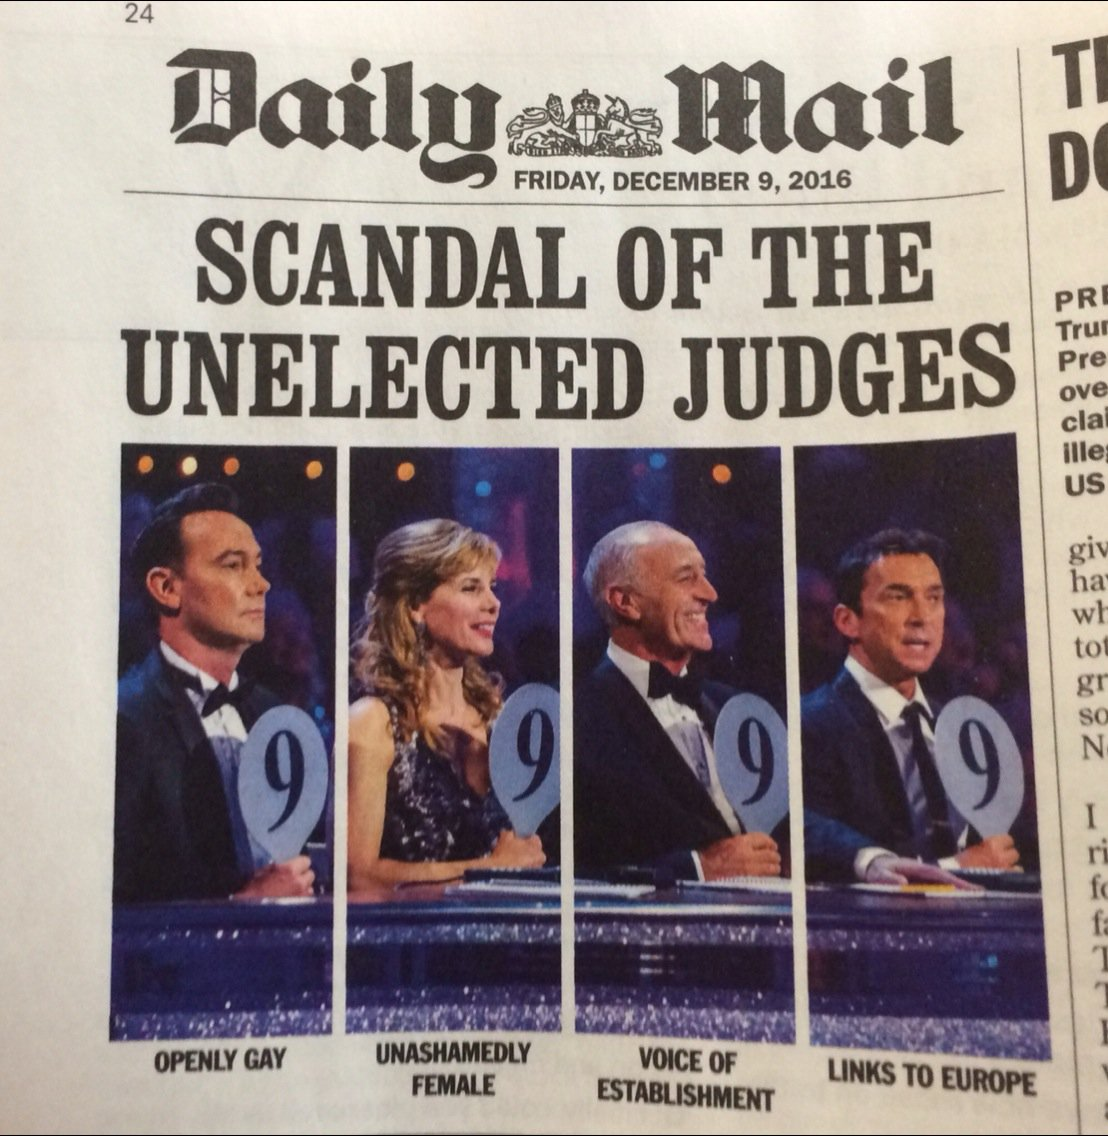 From latest Private Eye https://t.co/4aVhaV9RpI